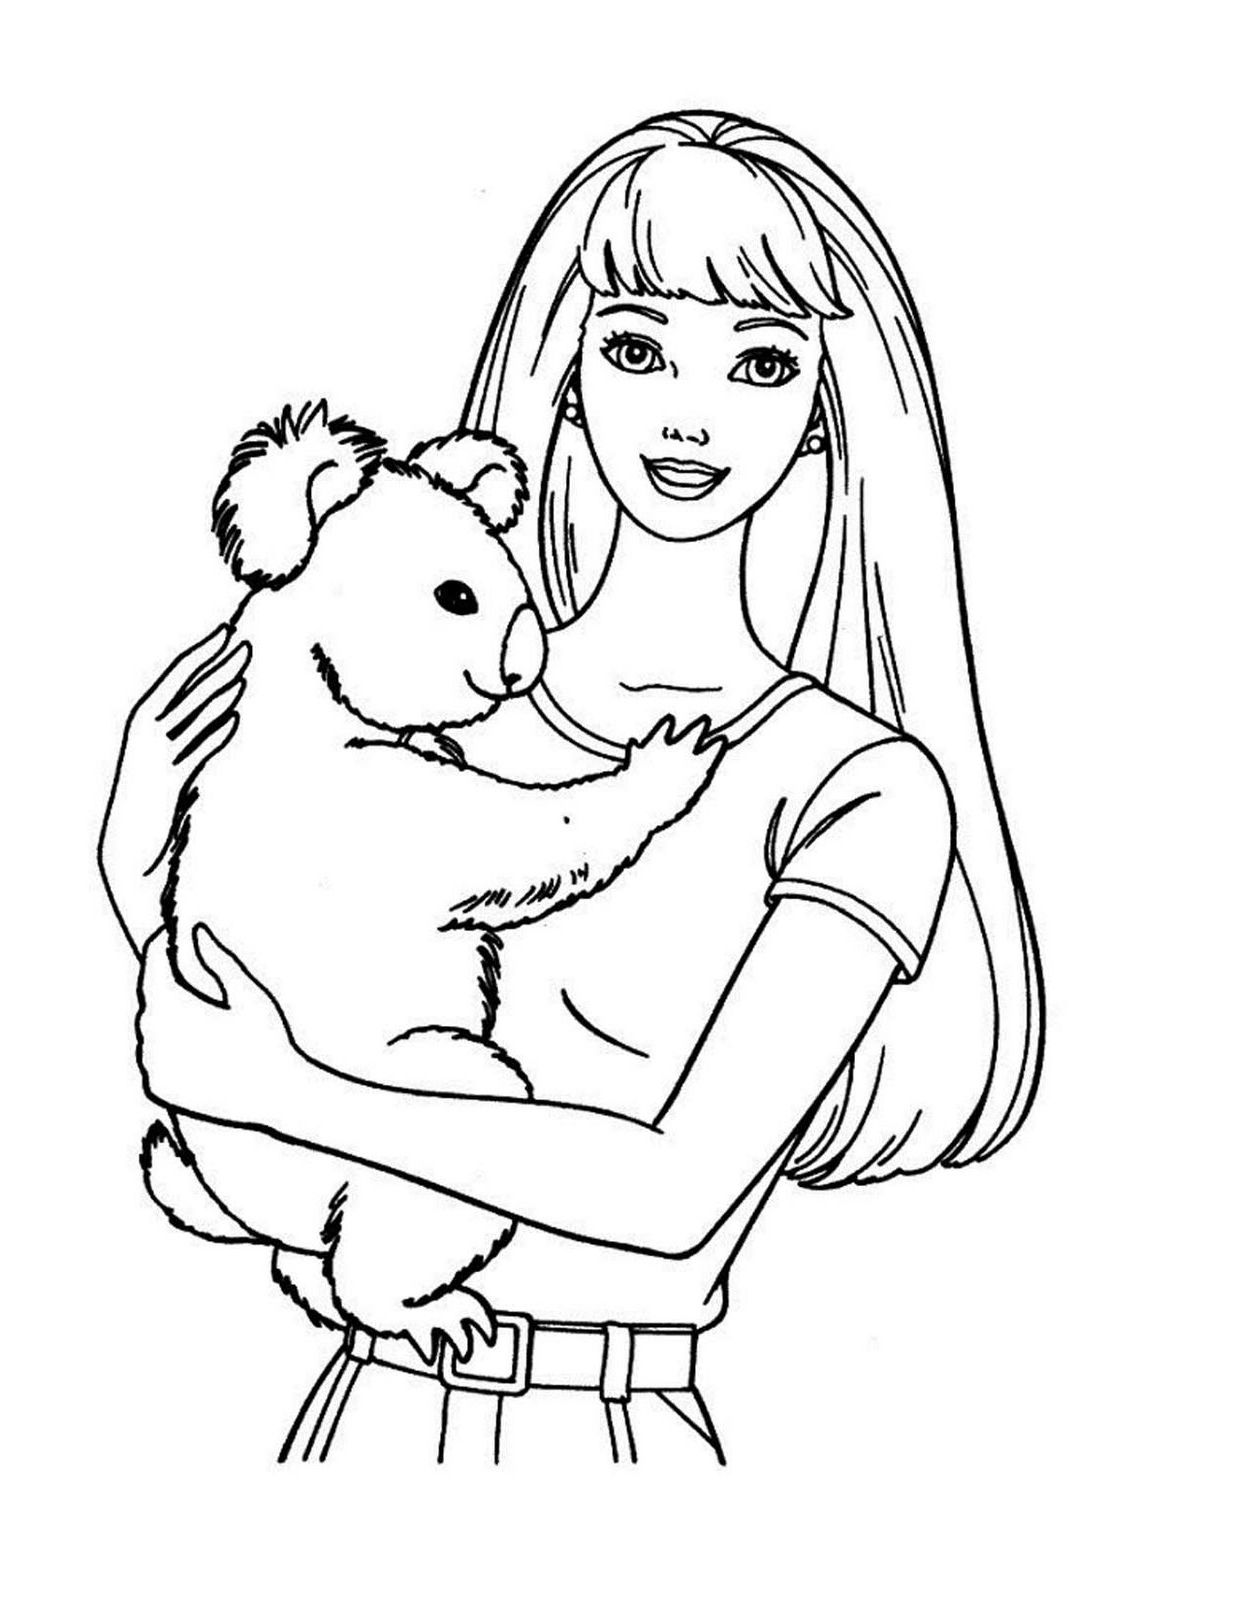 Princess lillifee coloring pages - Barbie Coloring Pages Printable Sheet Coloring Pages To Print